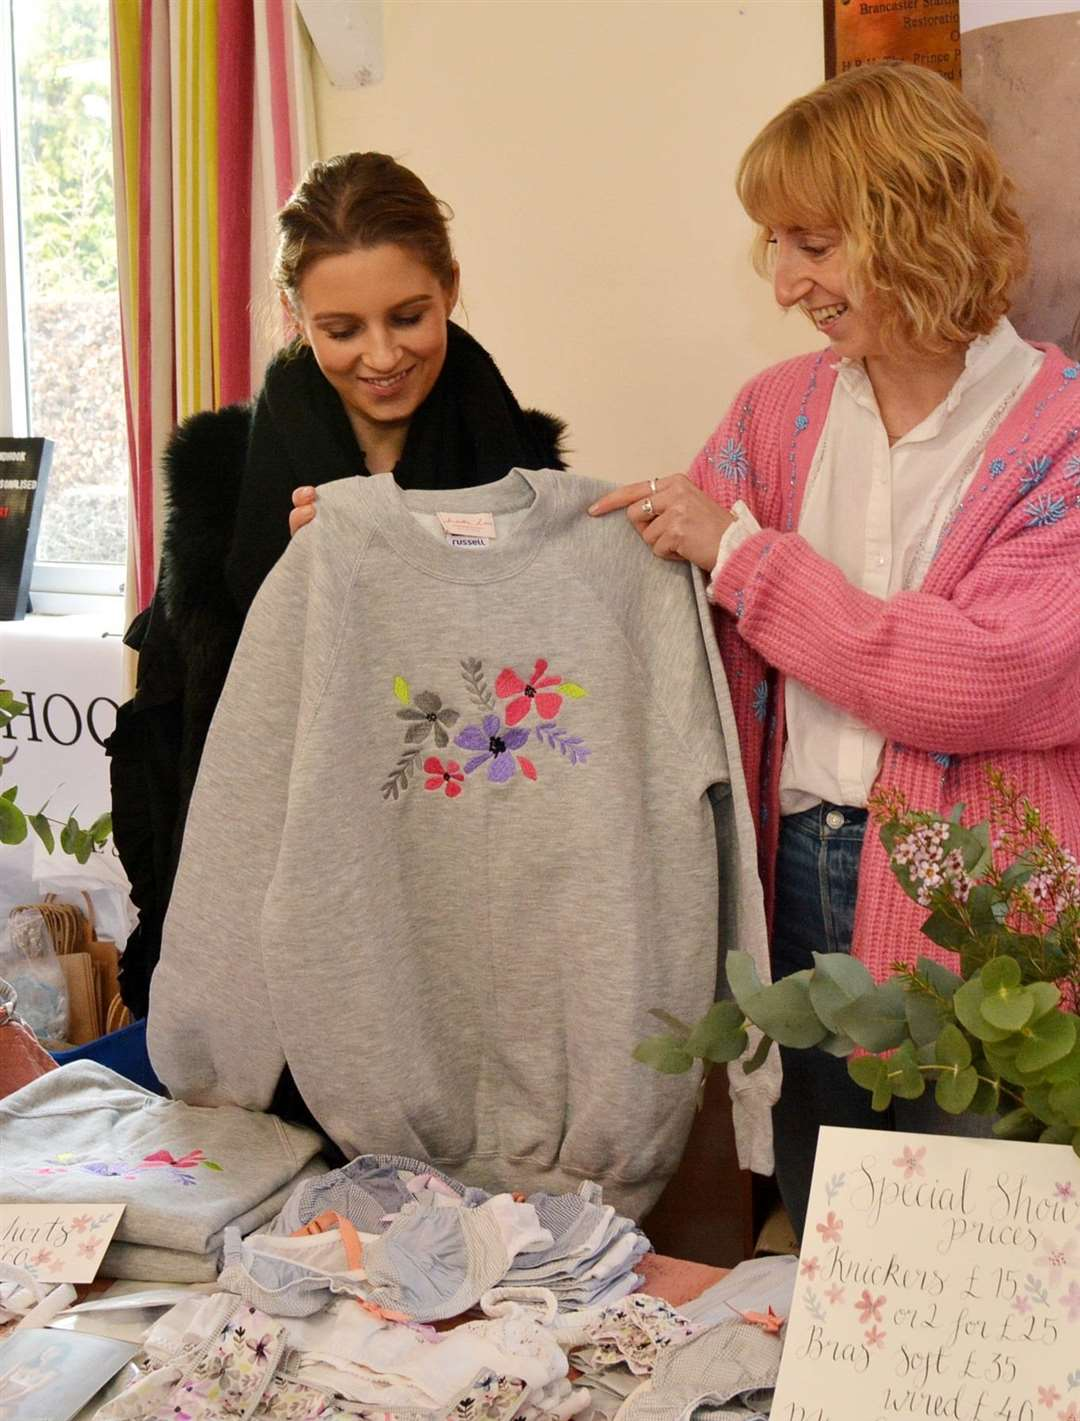 Mimi Emmett checks out one of Martha Coomber's sweaters for size on her Lounge Wear stall (6066412)